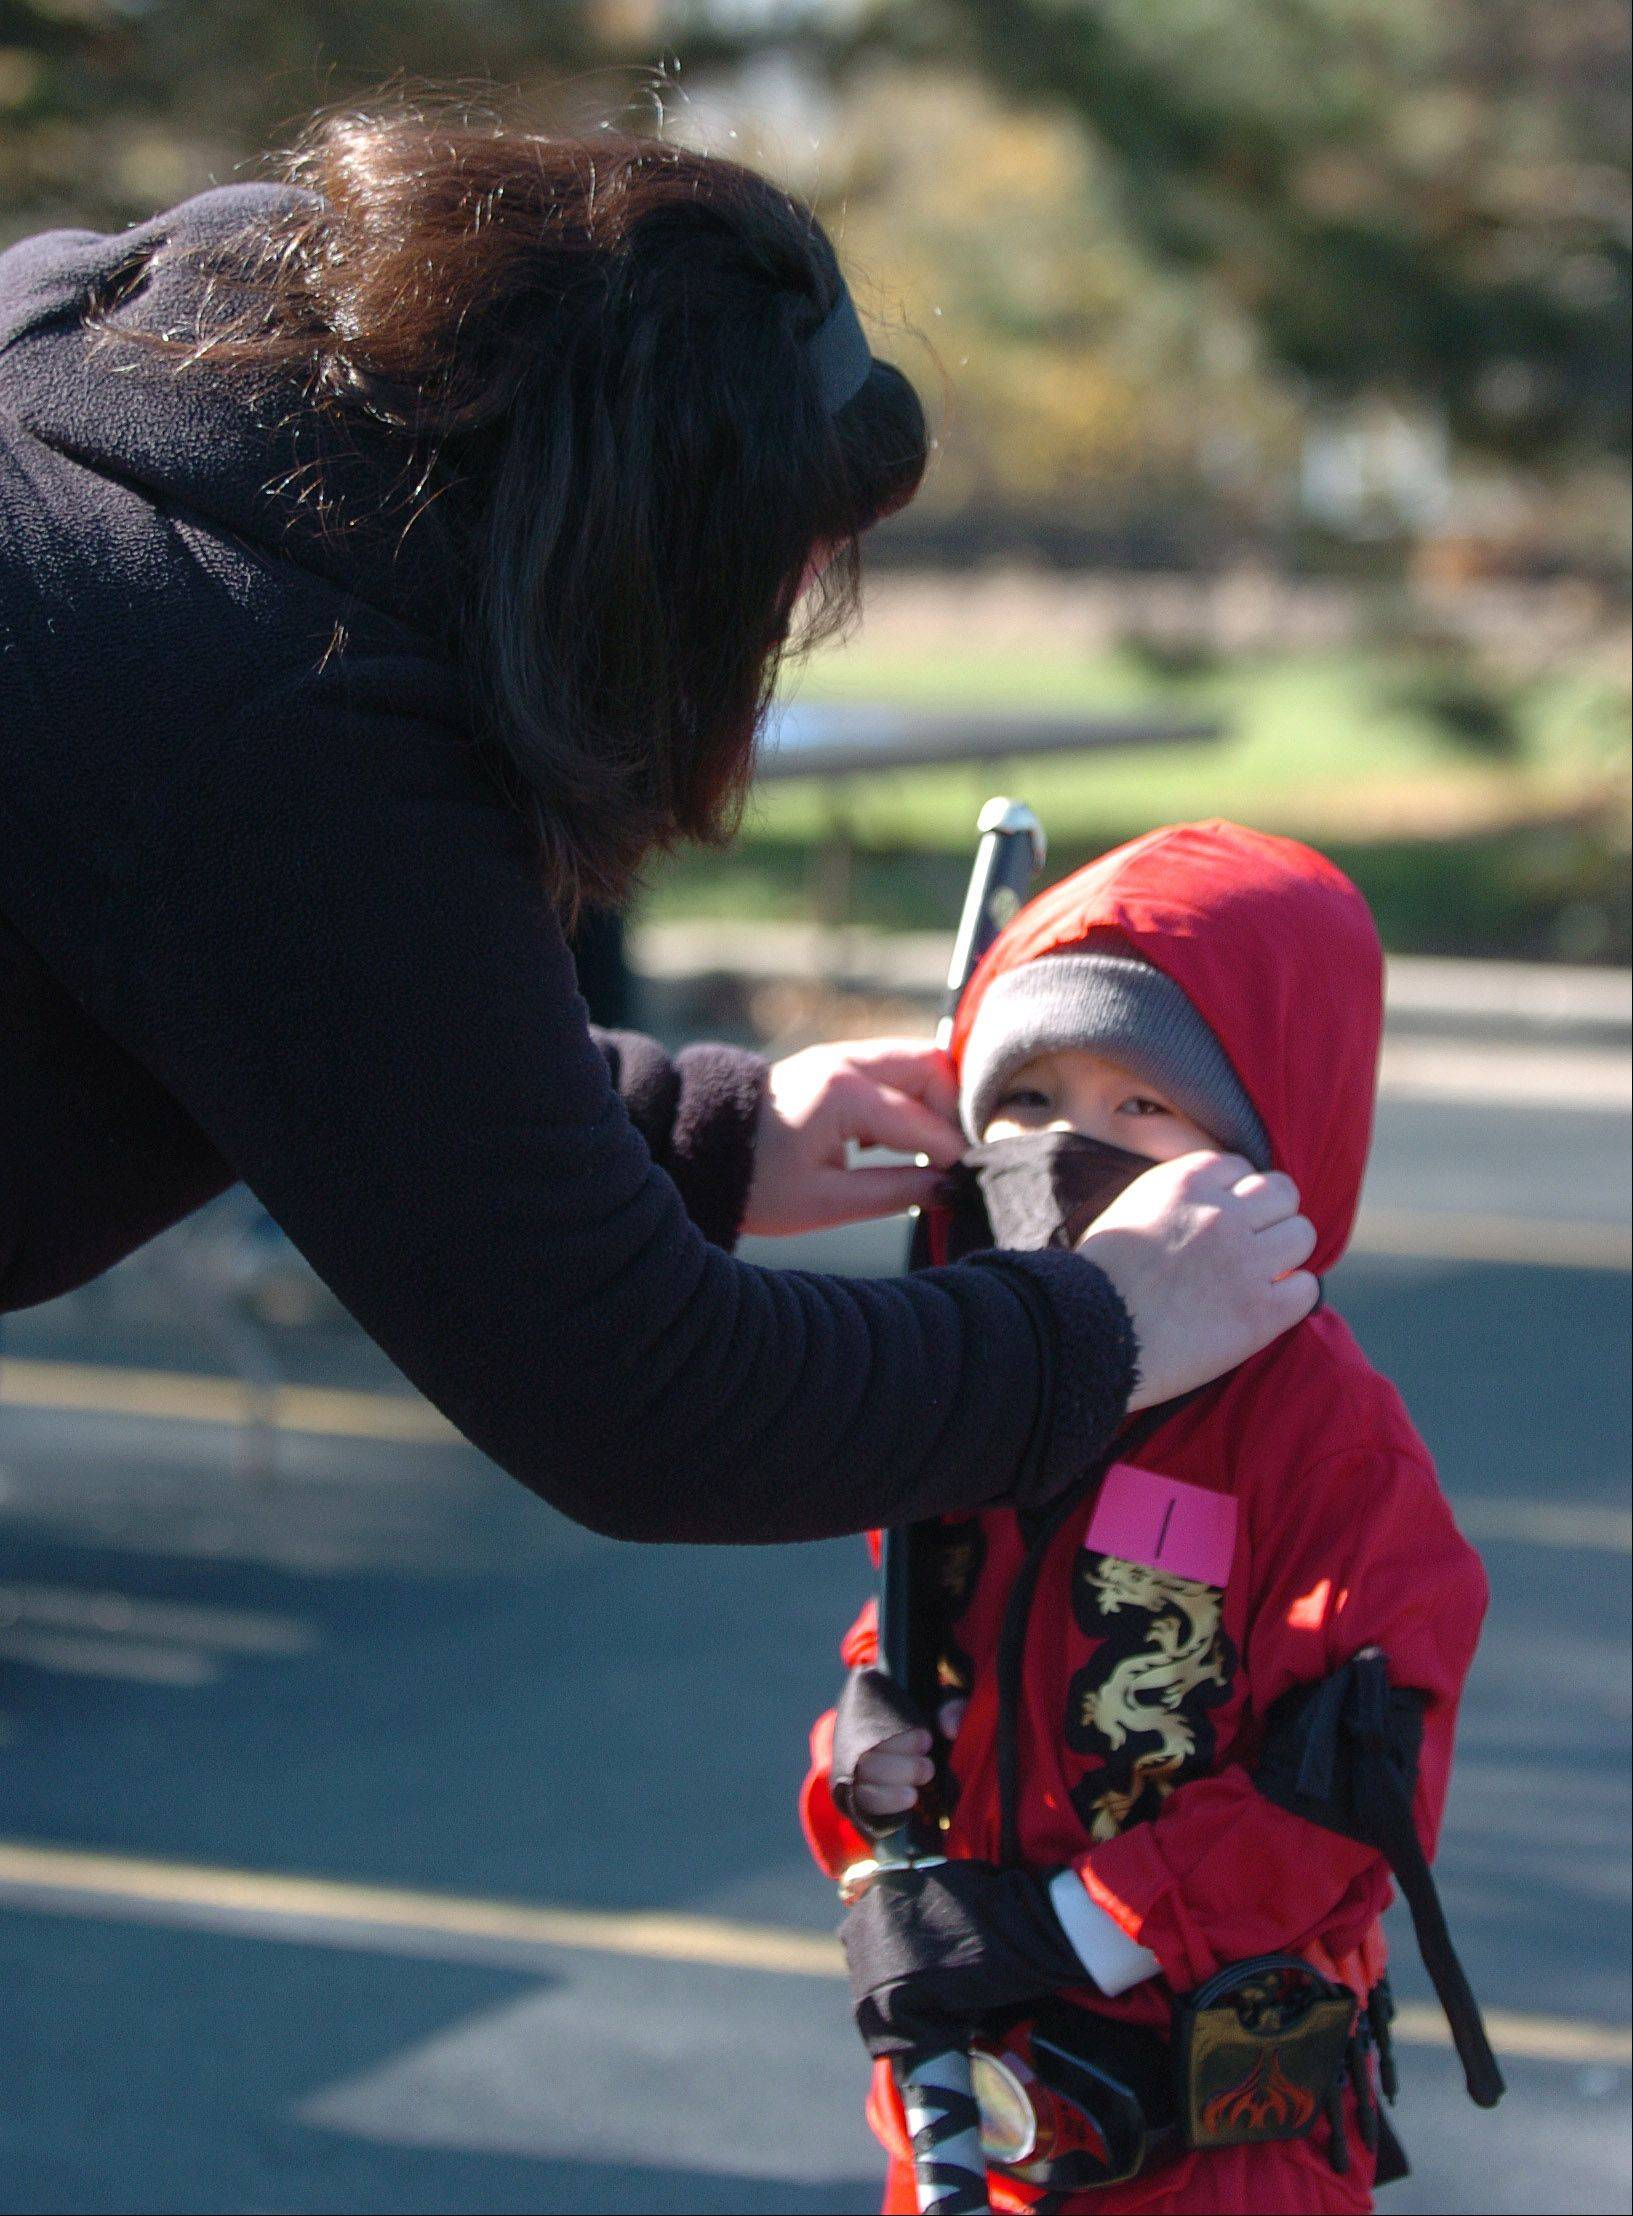 Kim Engel of Wheaton helps Oscar Smith, 5, of West Chicago get his face mask on during the West Chicago's Park District's Halloween Parade and costume contest at West Chicago Library Saturday. Kim is Oscar's big sister.